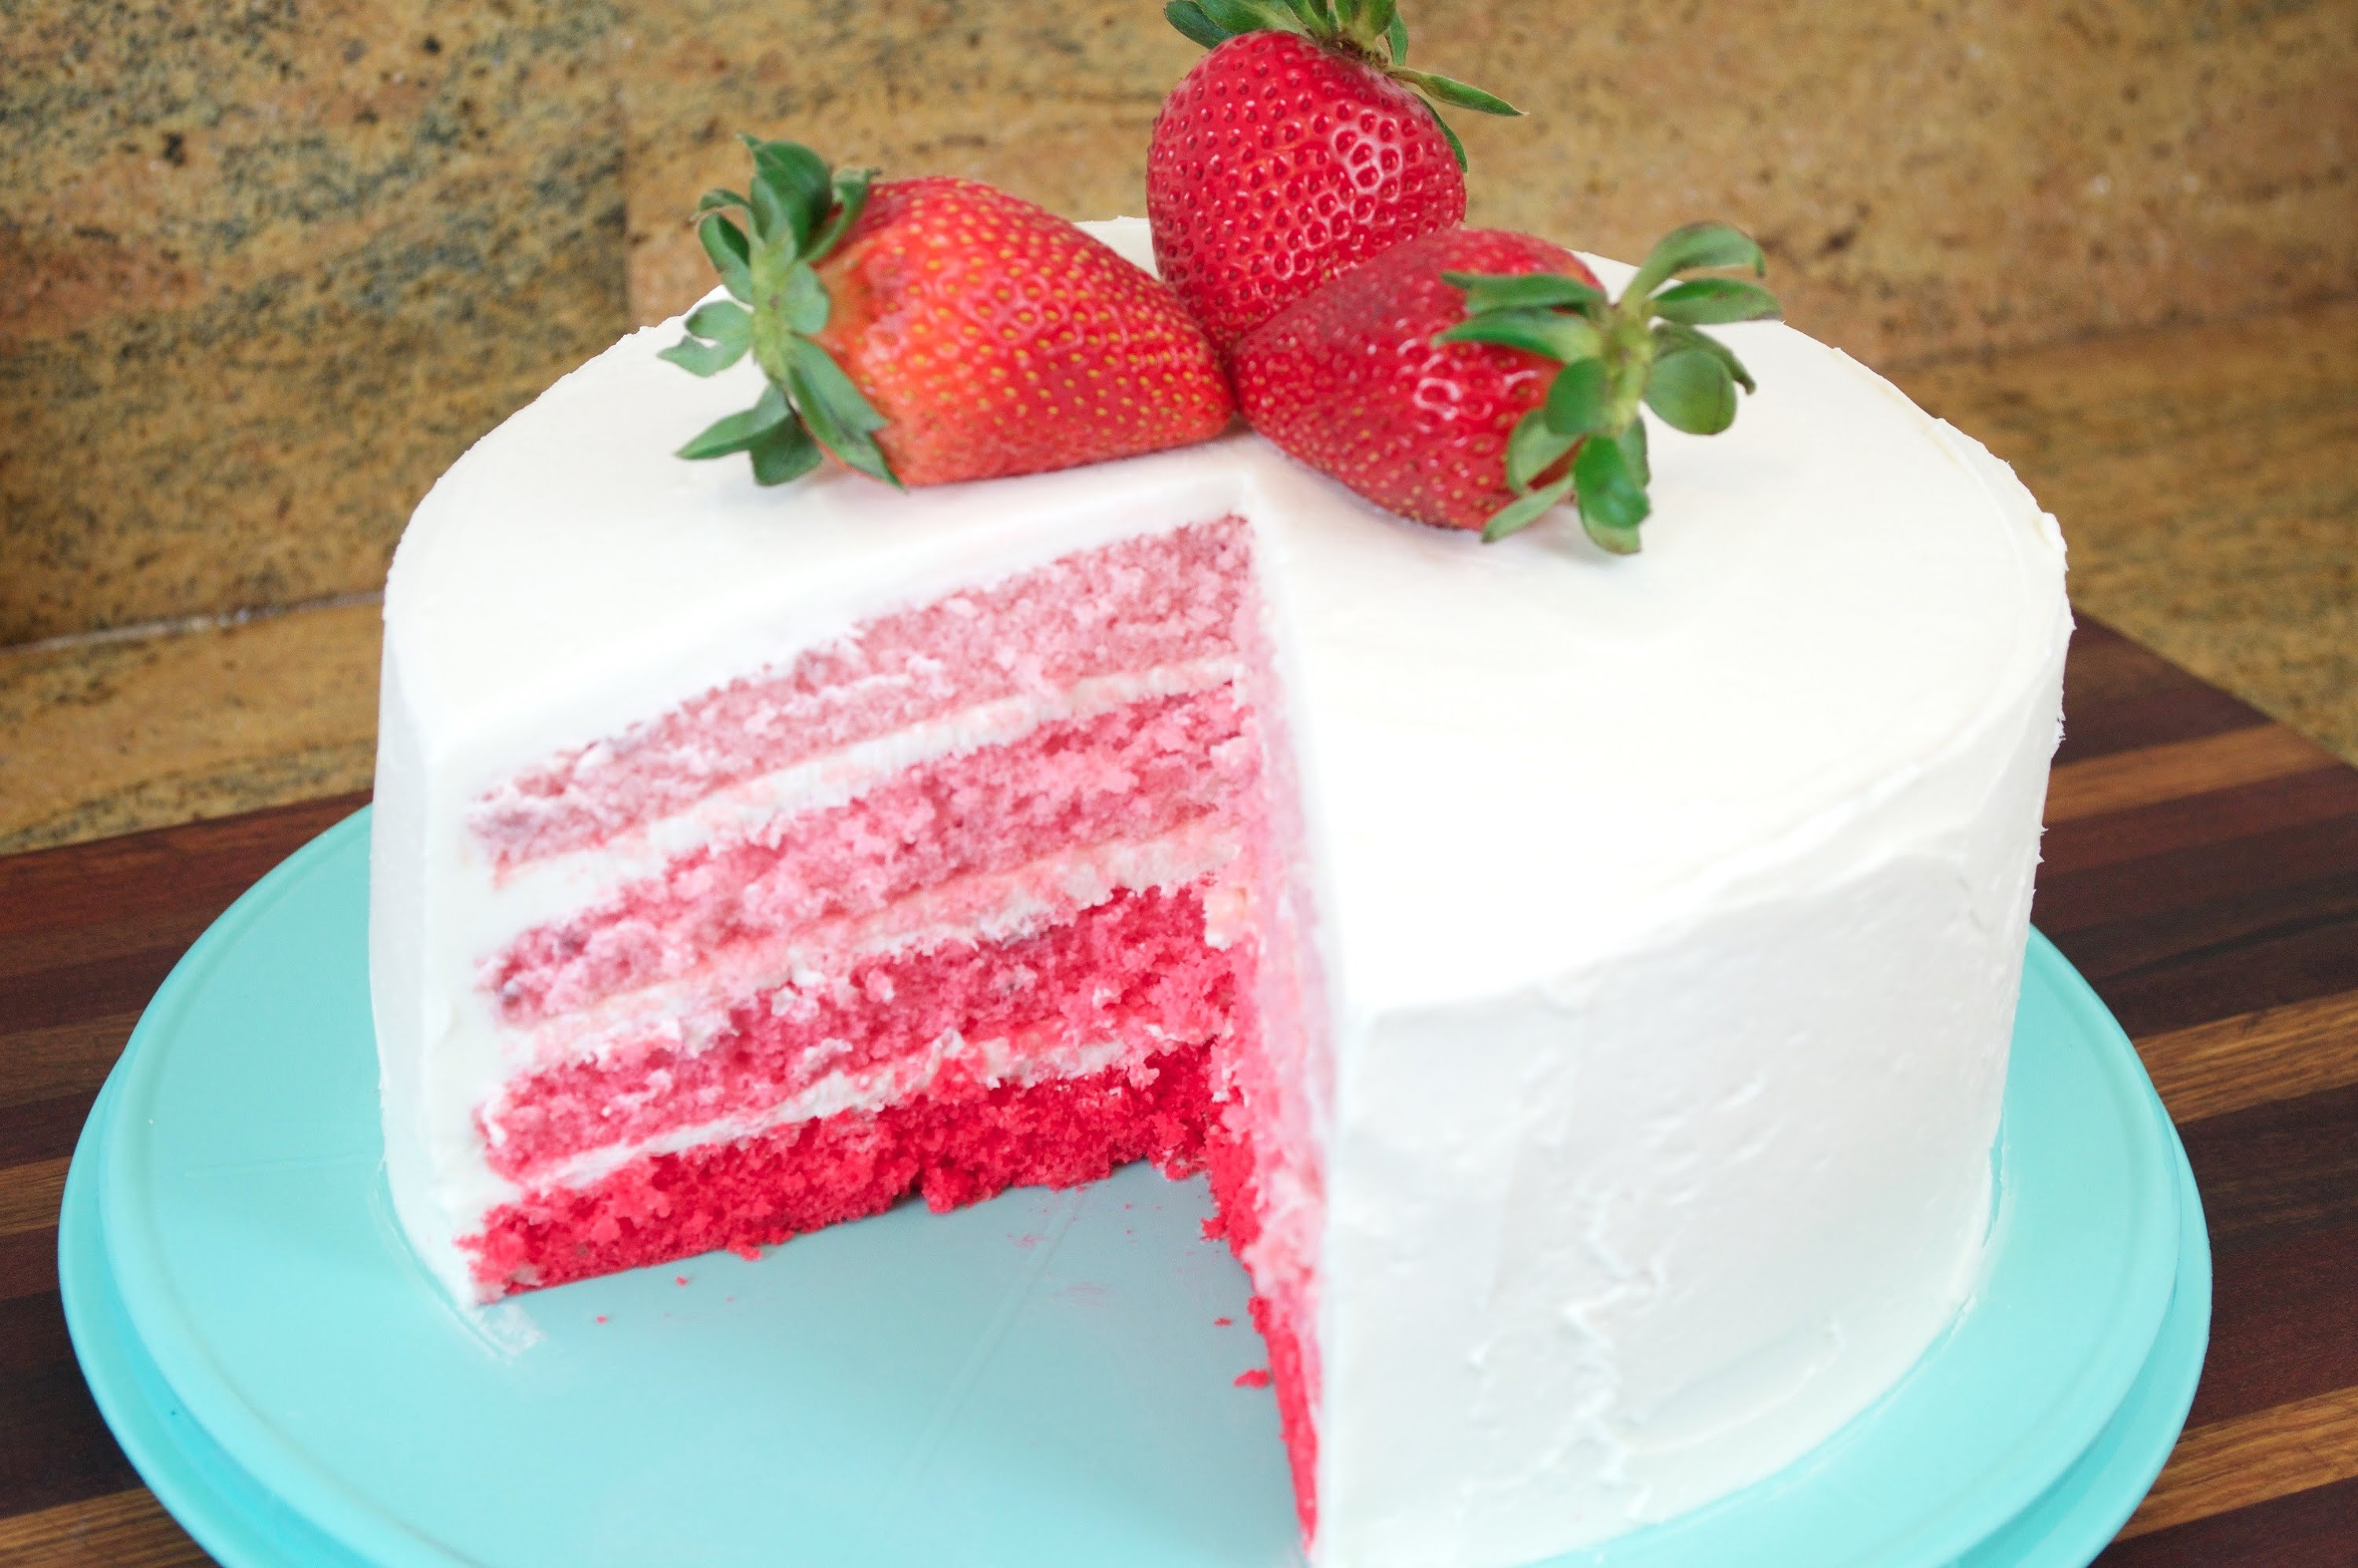 Cream Strawberry Swirl Cake Recipe